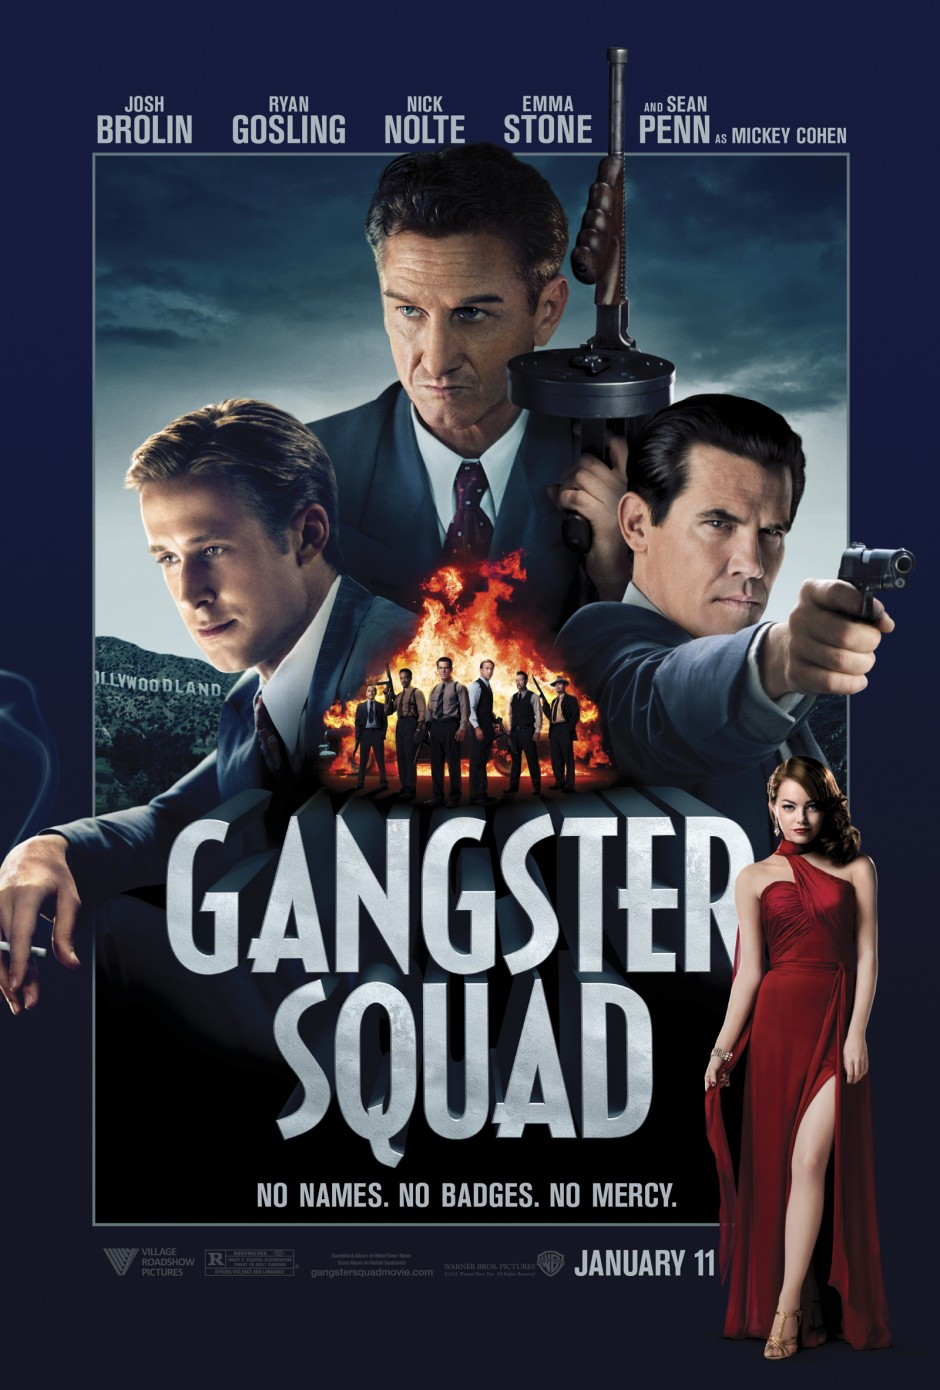 Gangster-Squad-2012-Movie-Poster-e1349906504319.jpg